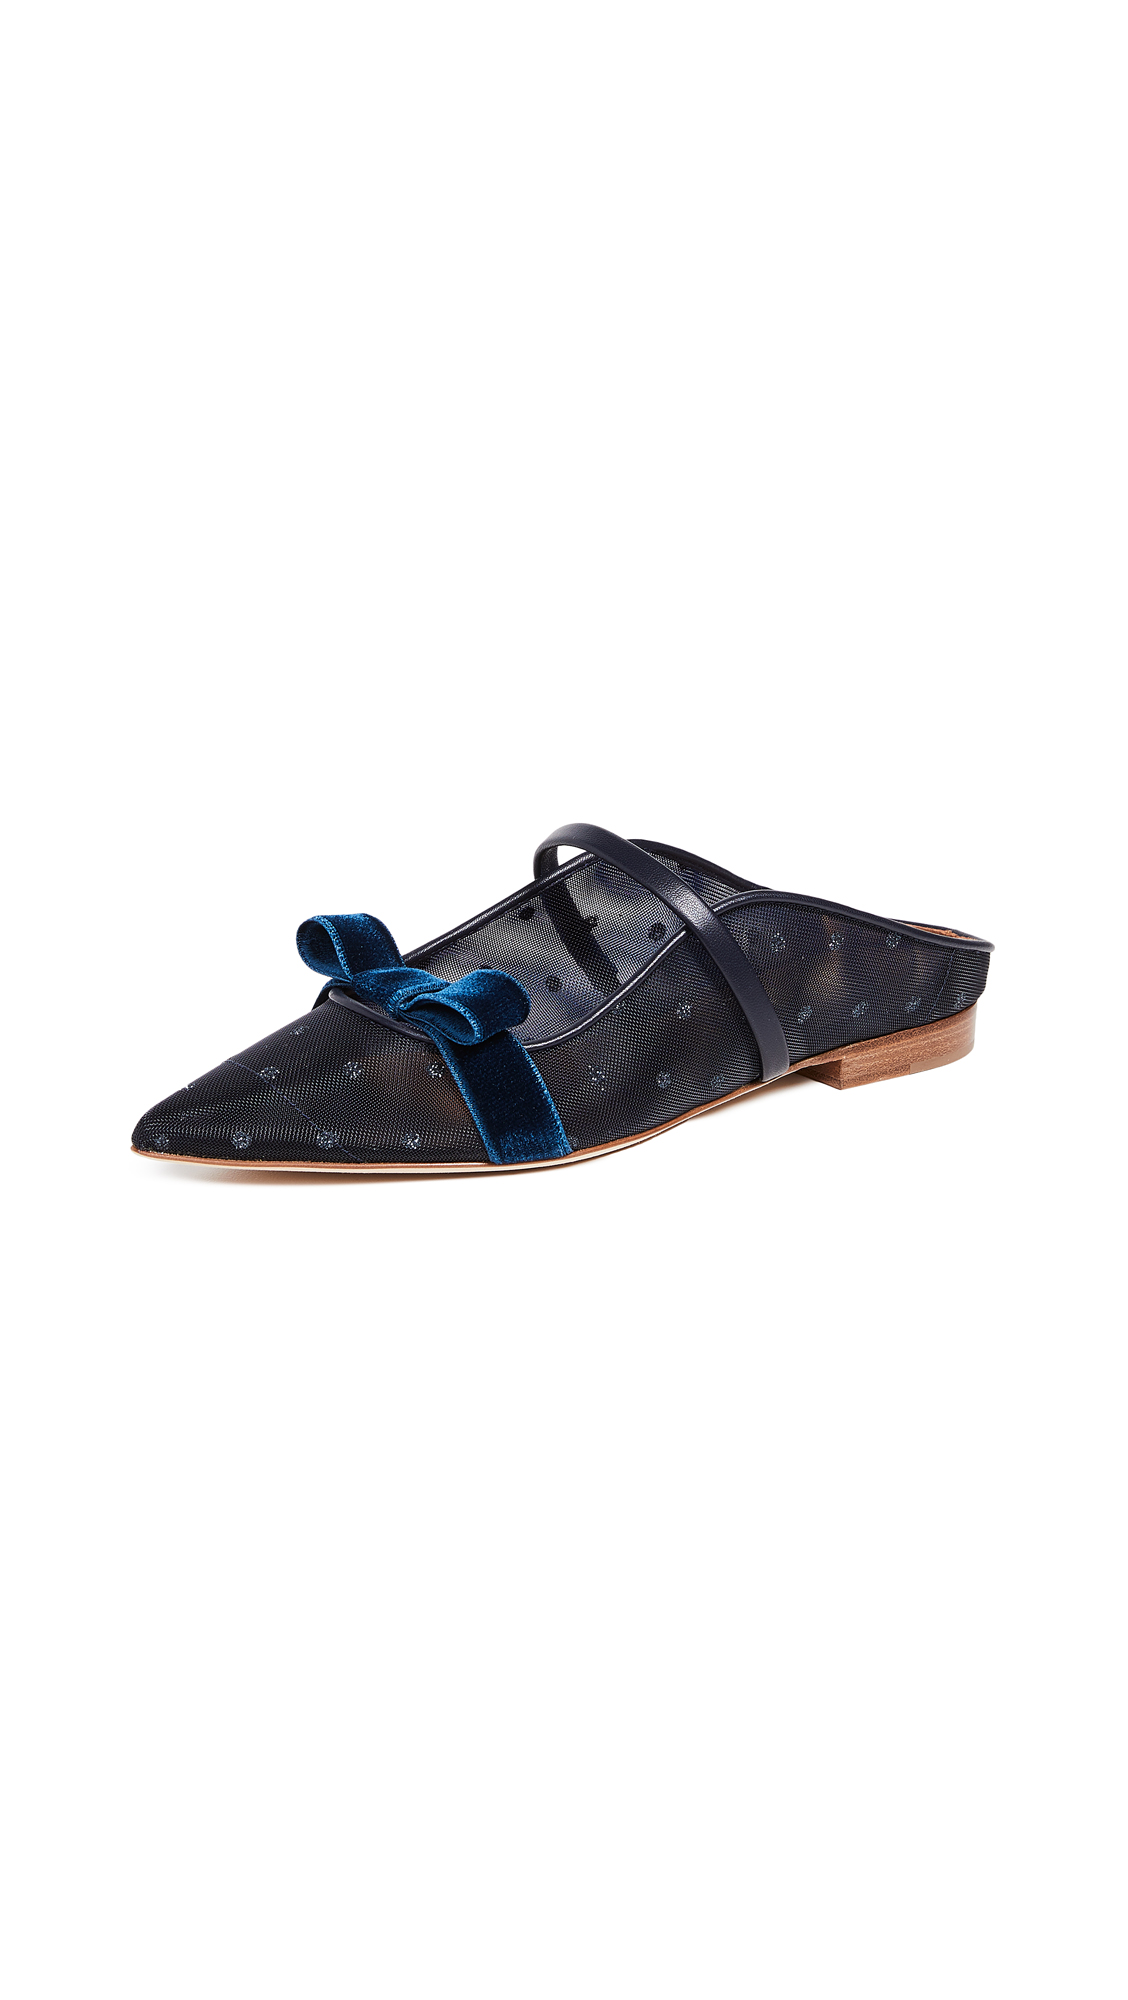 Malone Souliers Marguerite Mules - Blue/Midnight